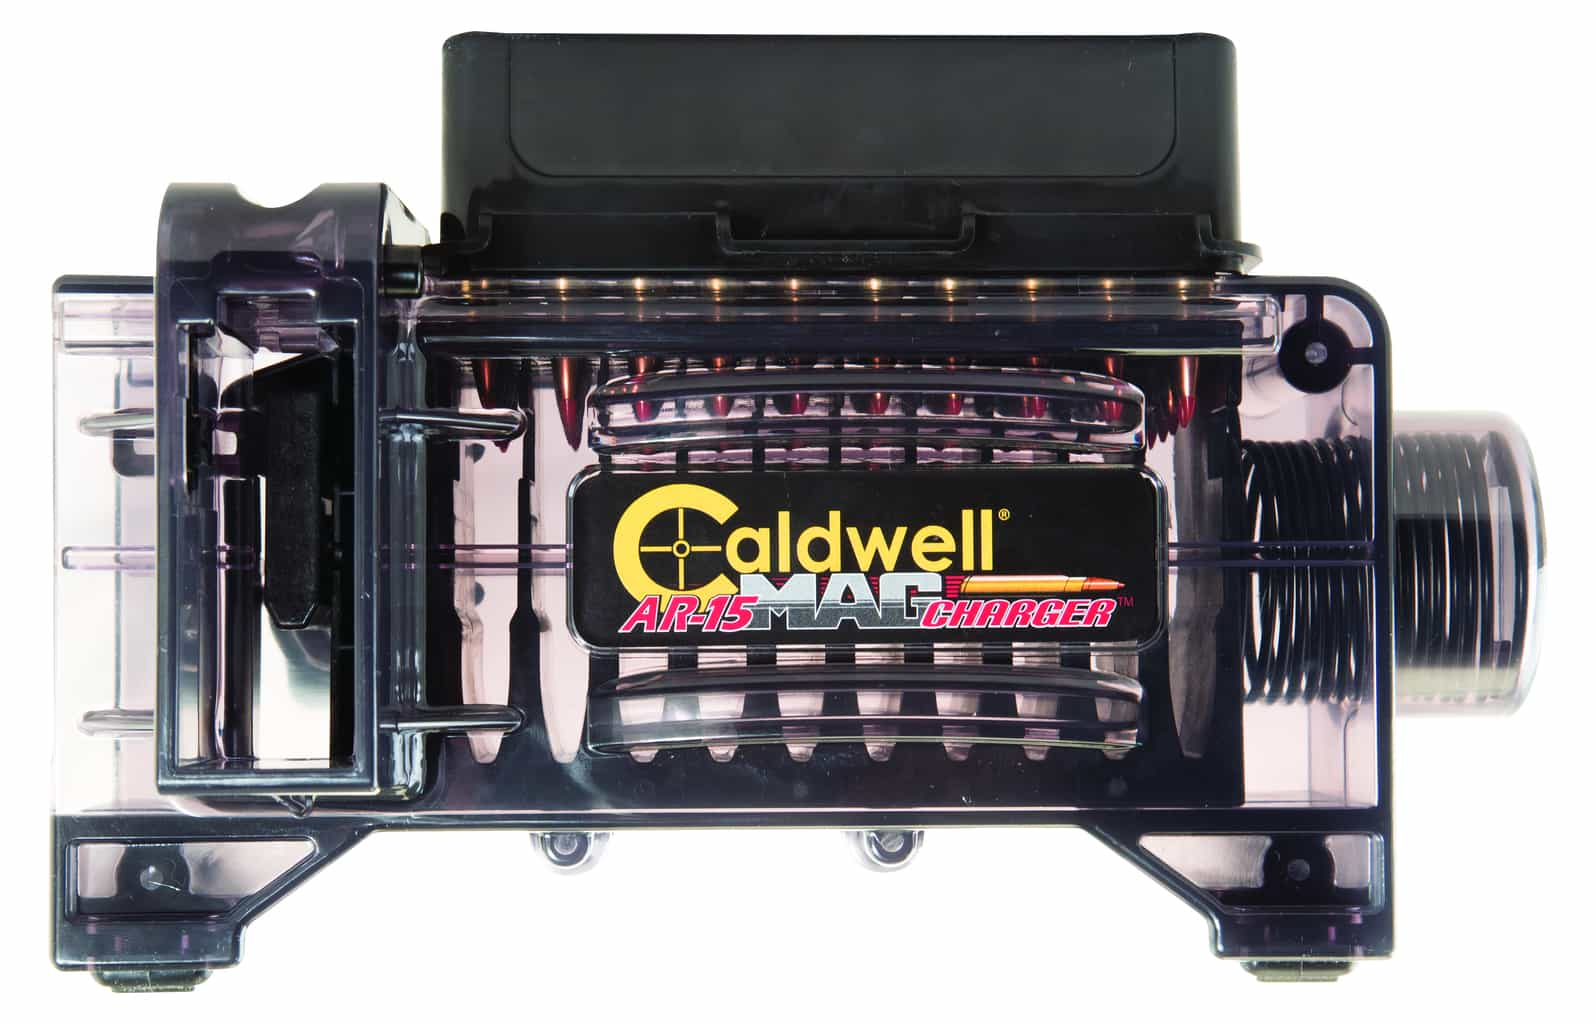 Caldwell® AK Mag Charger™ Ammo Box-7.62x39 (5 Pack) - 397623 Loading Charger